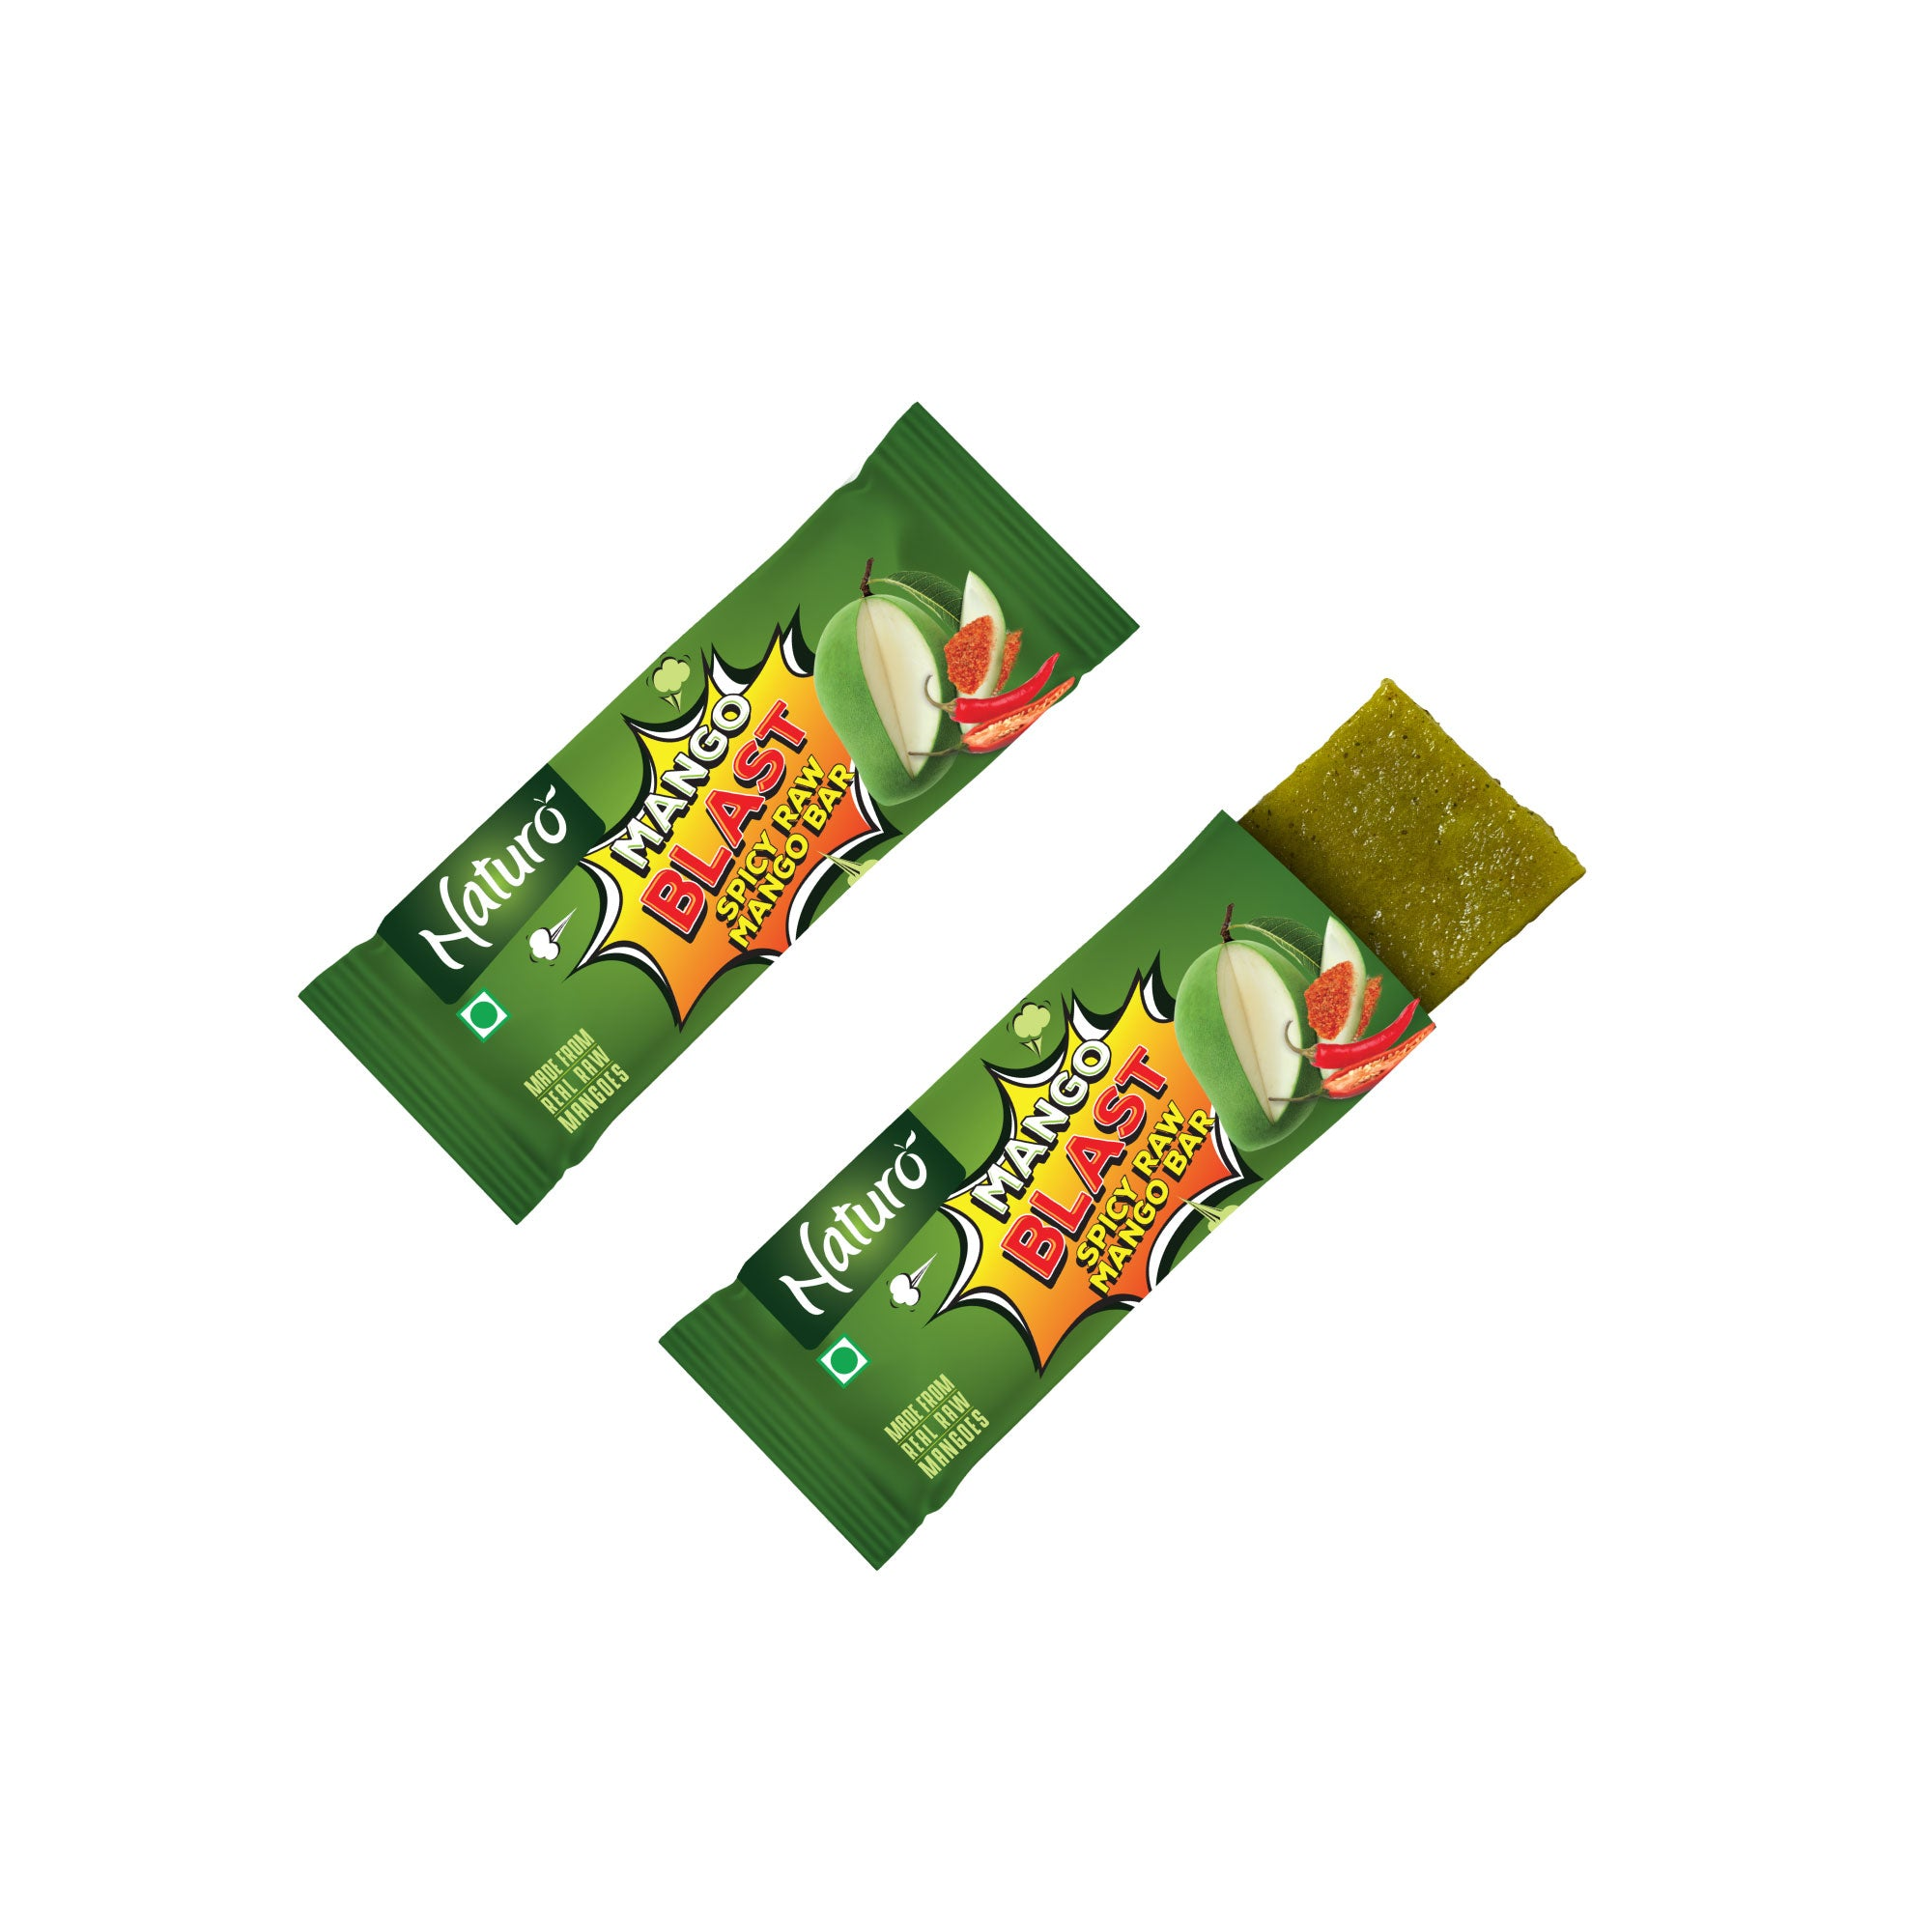 Naturo Mango Blast - Spicy Raw Mango Bar -10g